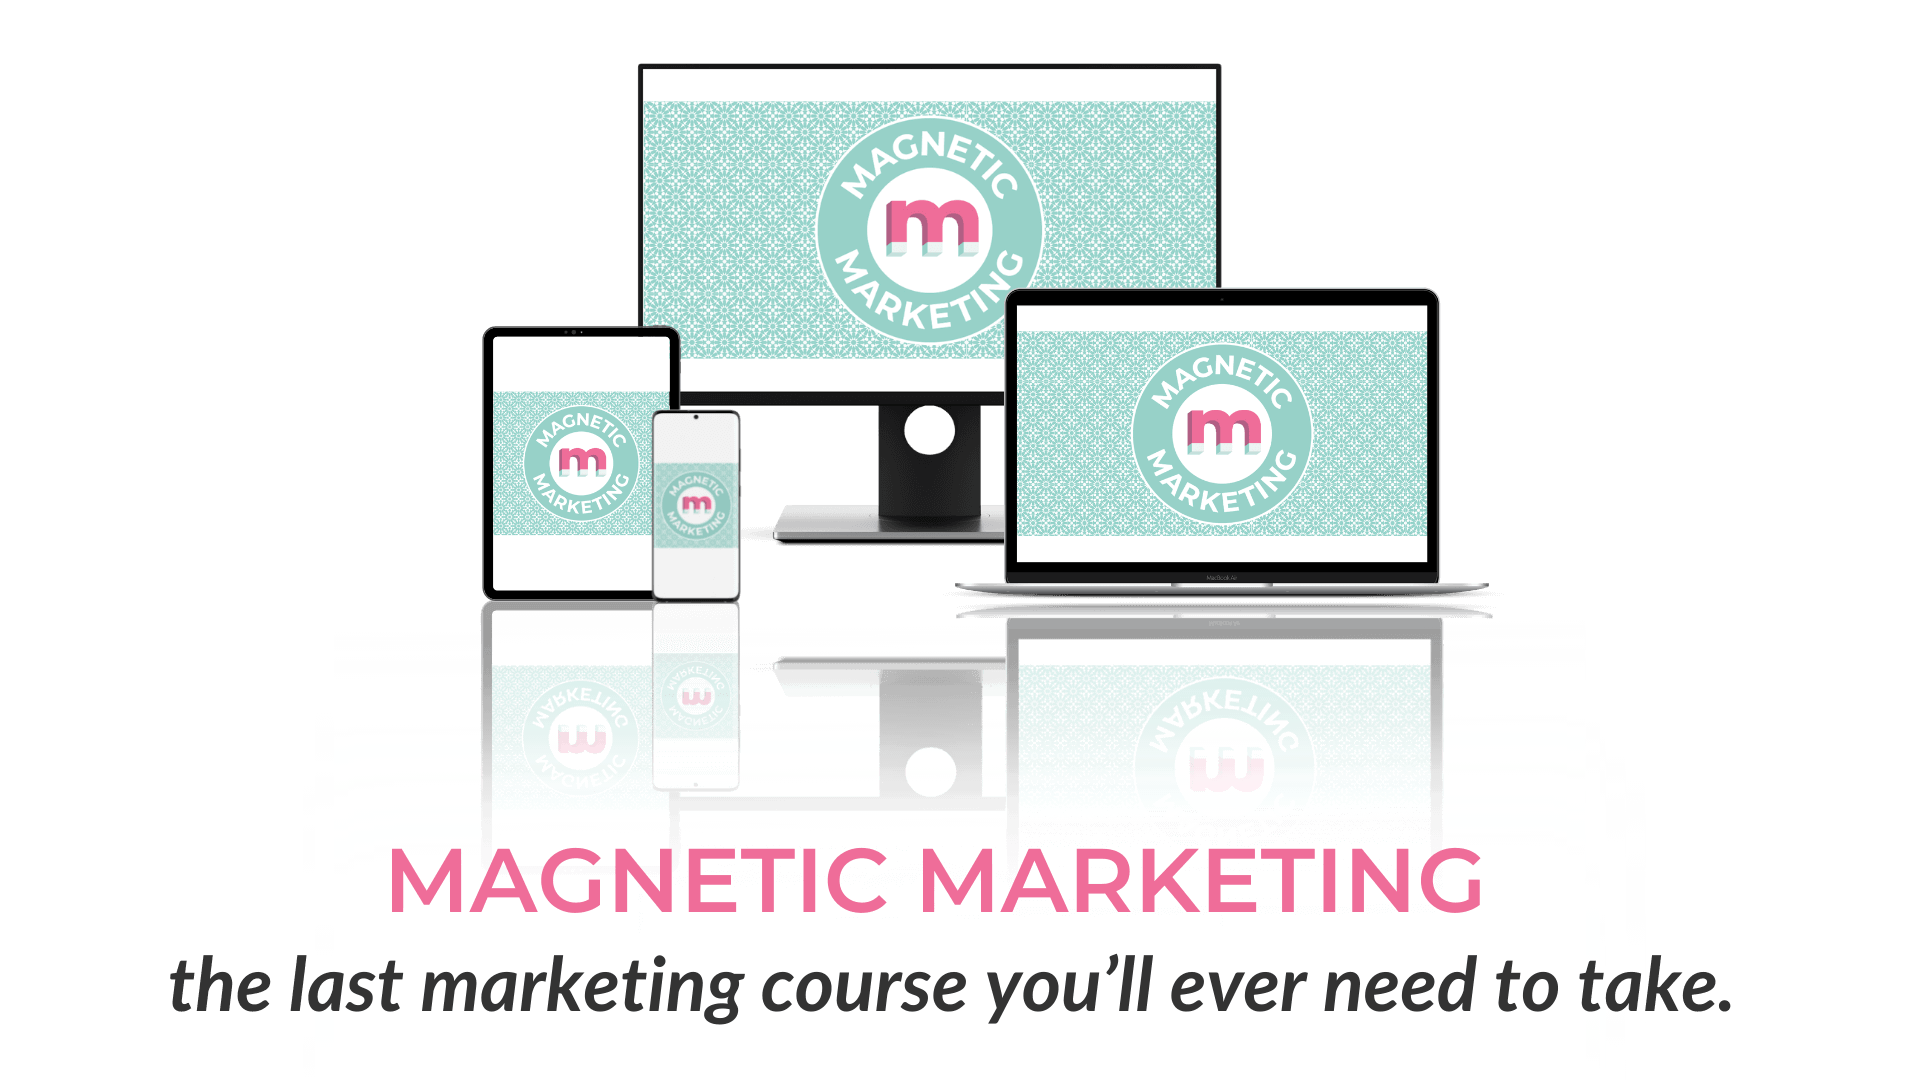 The Magnetic Marketing Course – the last marketing course you'll ever need to take